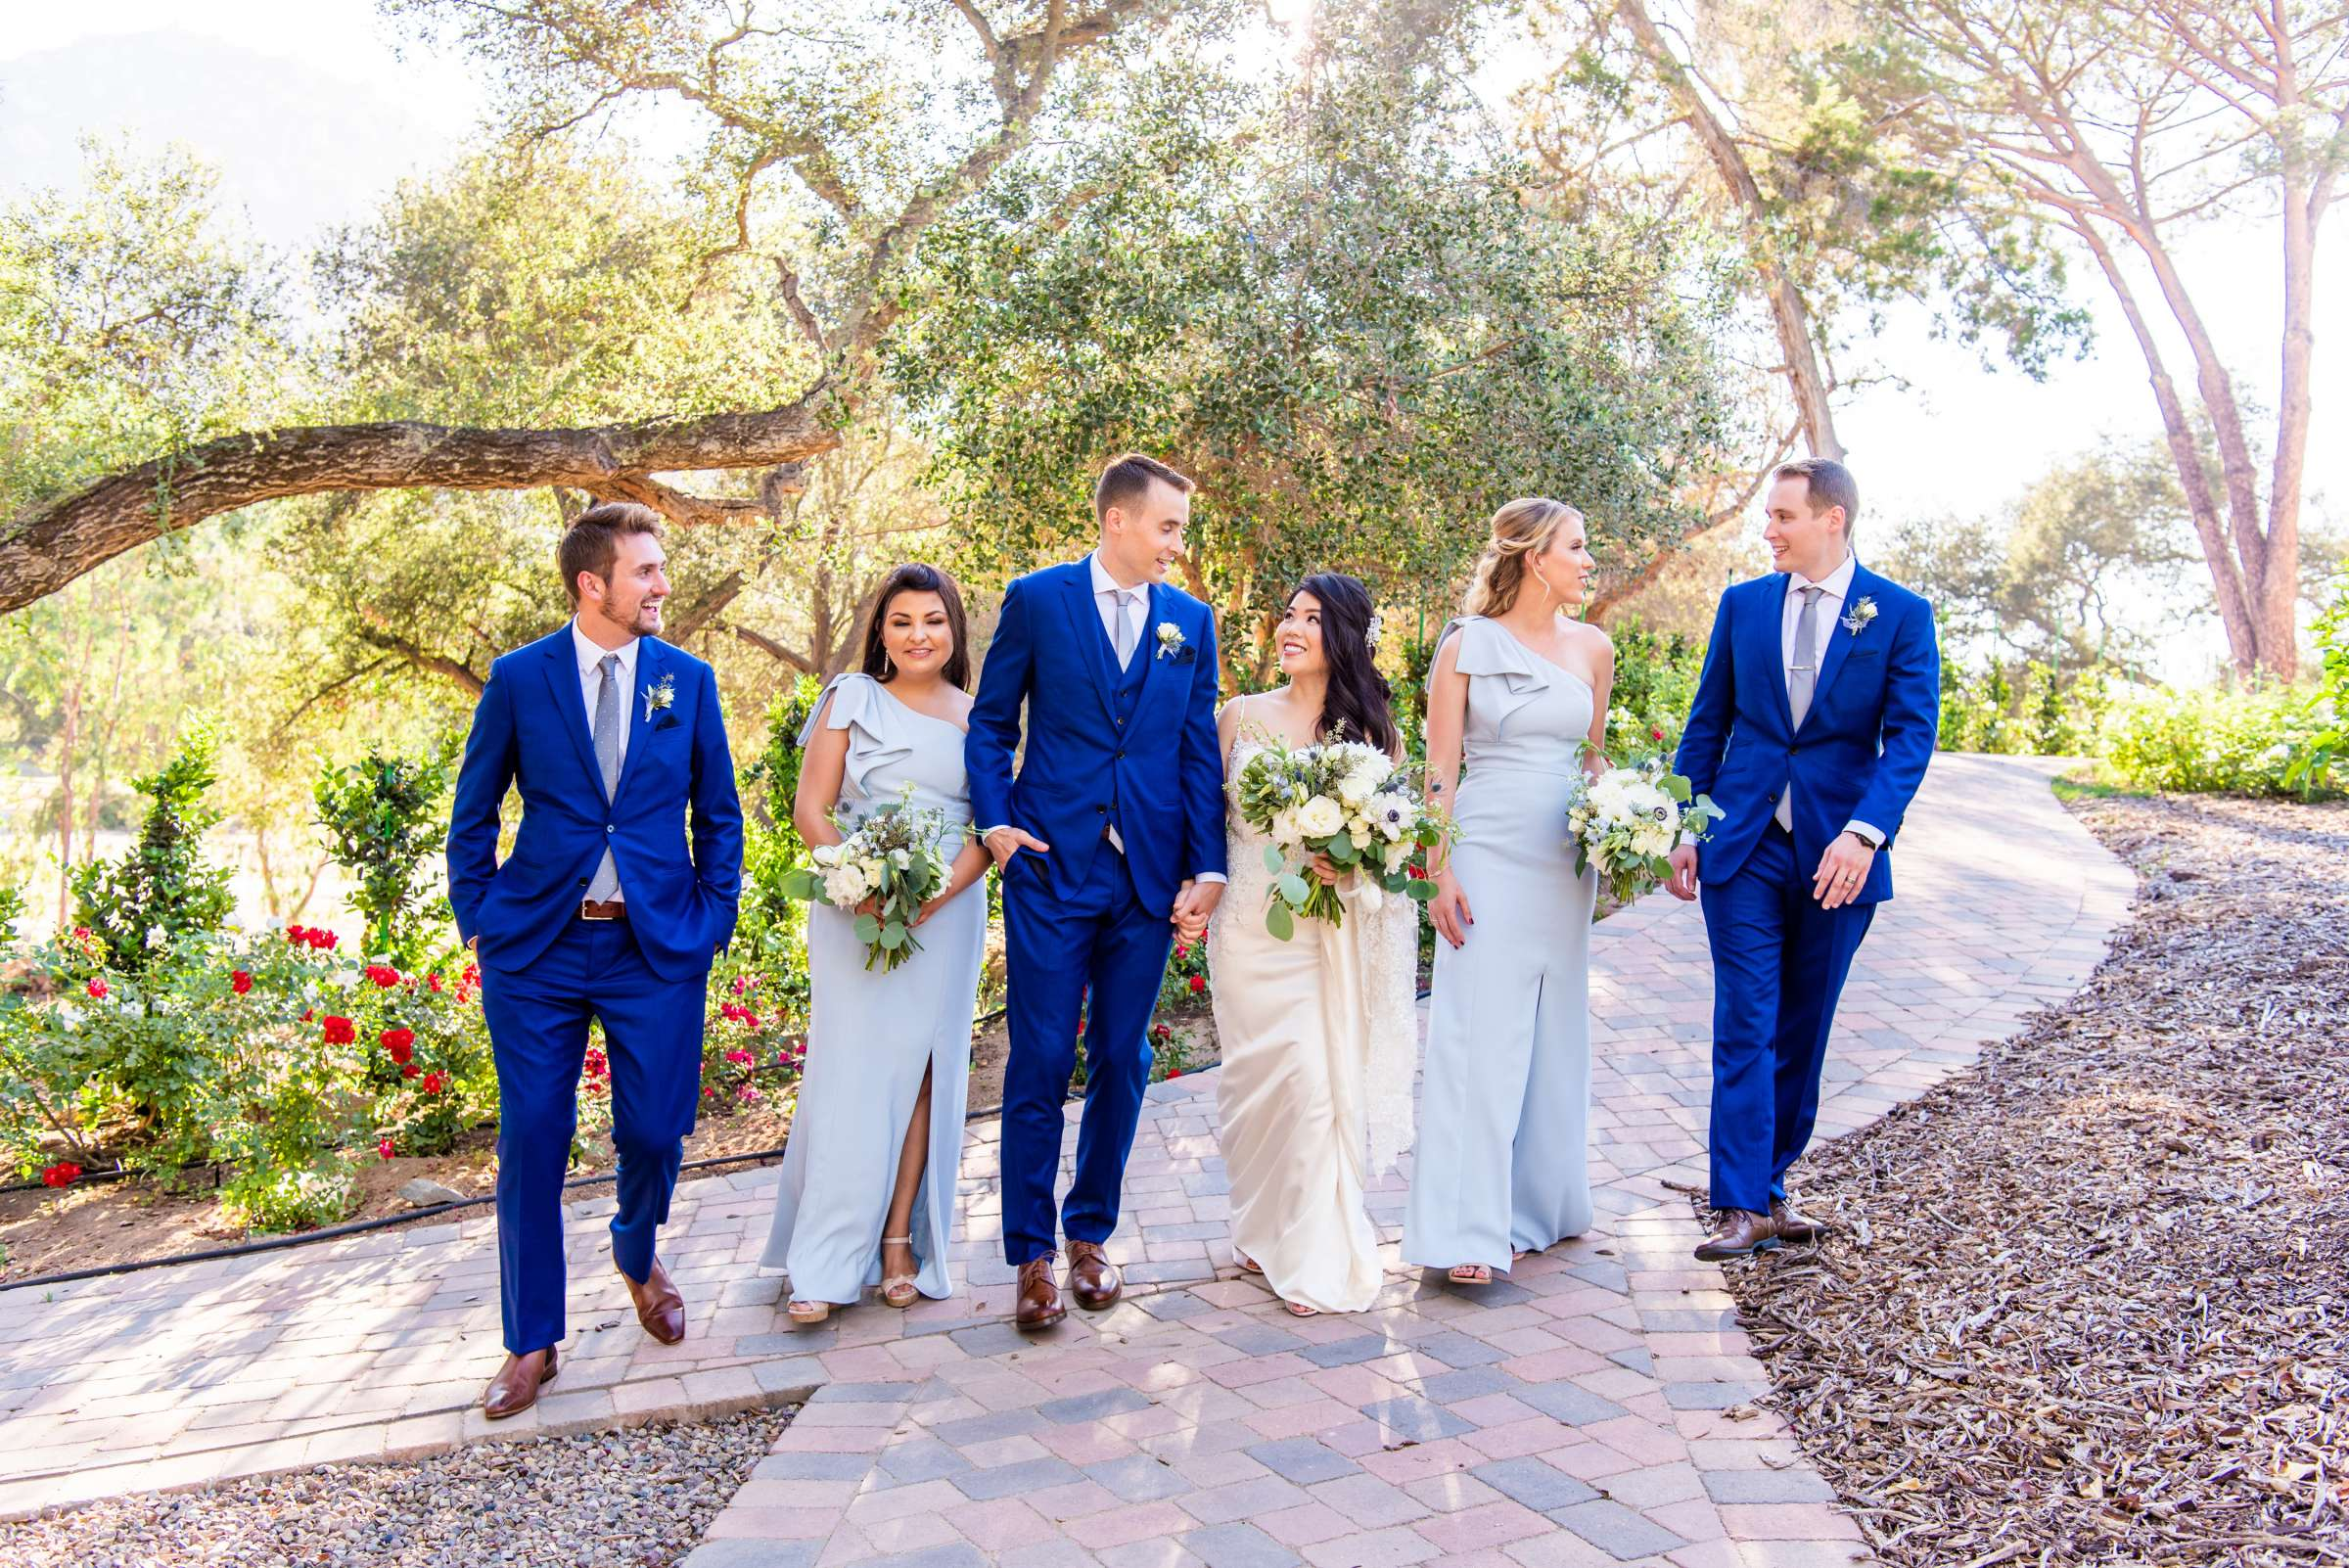 Mt Woodson Castle Wedding coordinated by I Do Weddings, Aya and Jared Wedding Photo #486968 by True Photography